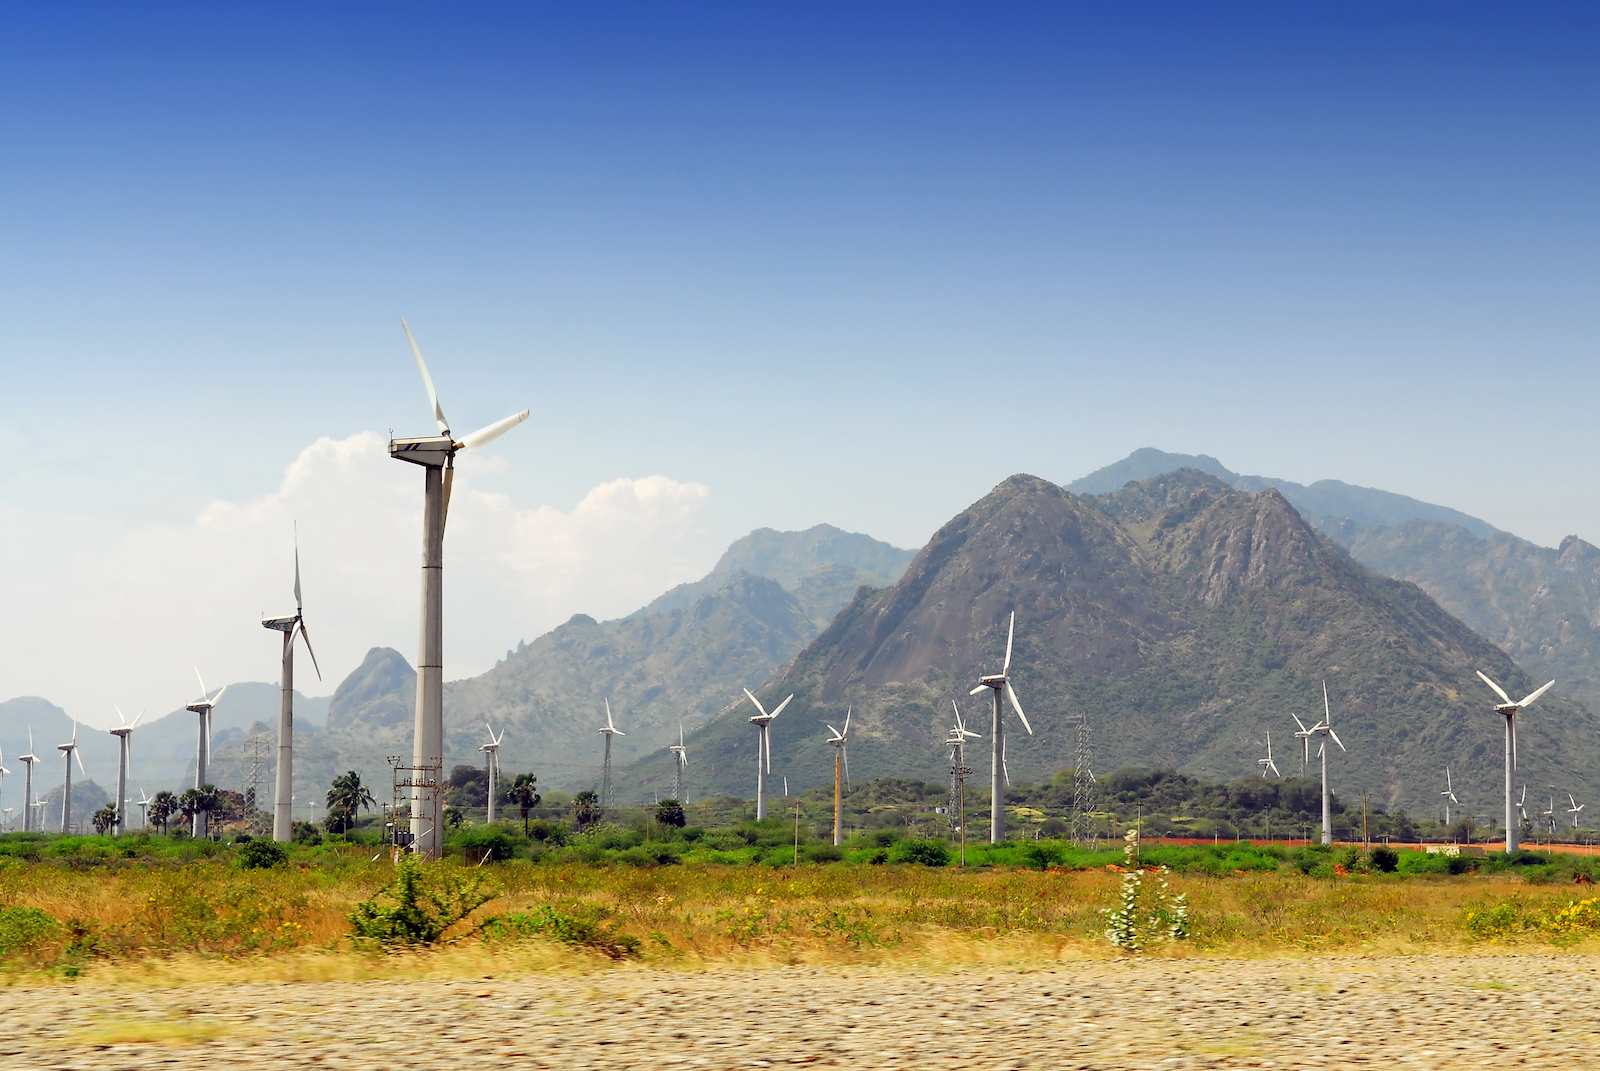 Bundled wind power project in Tamil Nadu, India